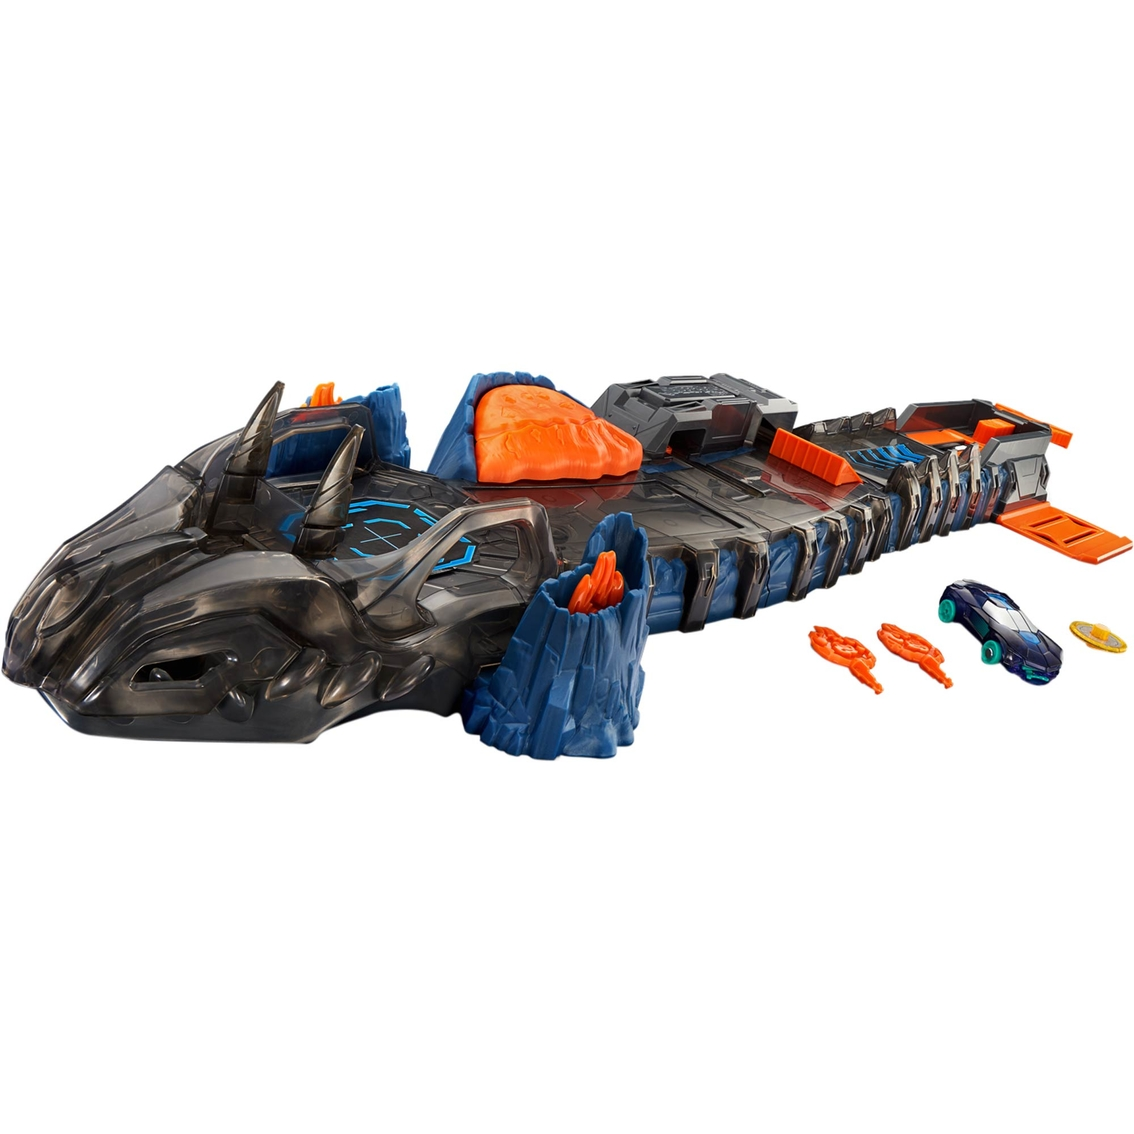 Screechers Wild Fossil Fire Stunt Set | Play Vehicles | Baby & Toys